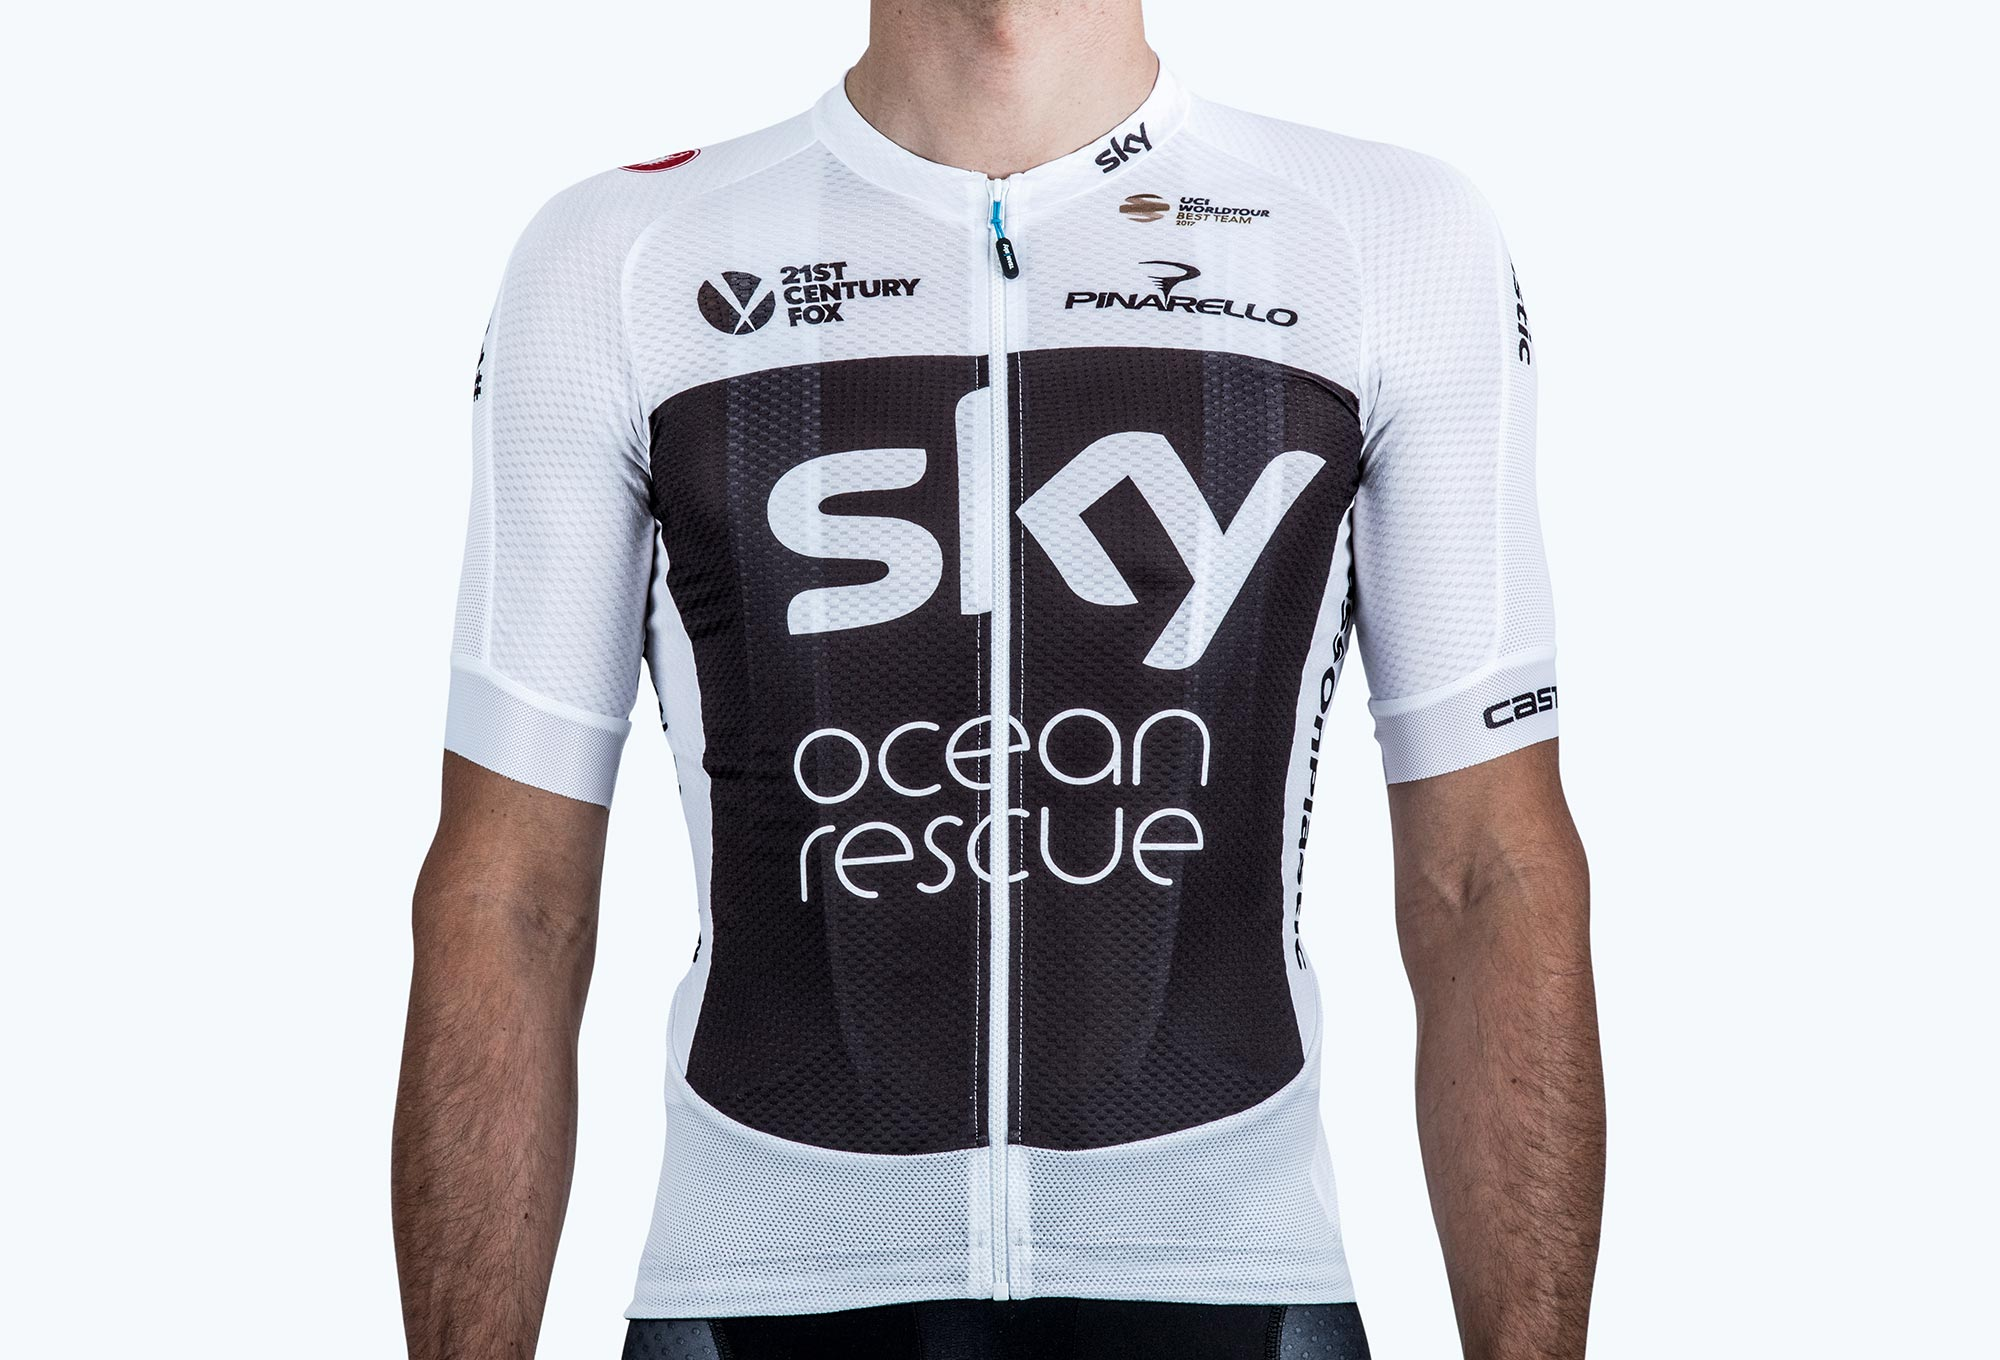 55fe406ac Castelli Team Sky 2018 TDF Podio Short Sleeves Jersey White Black ...